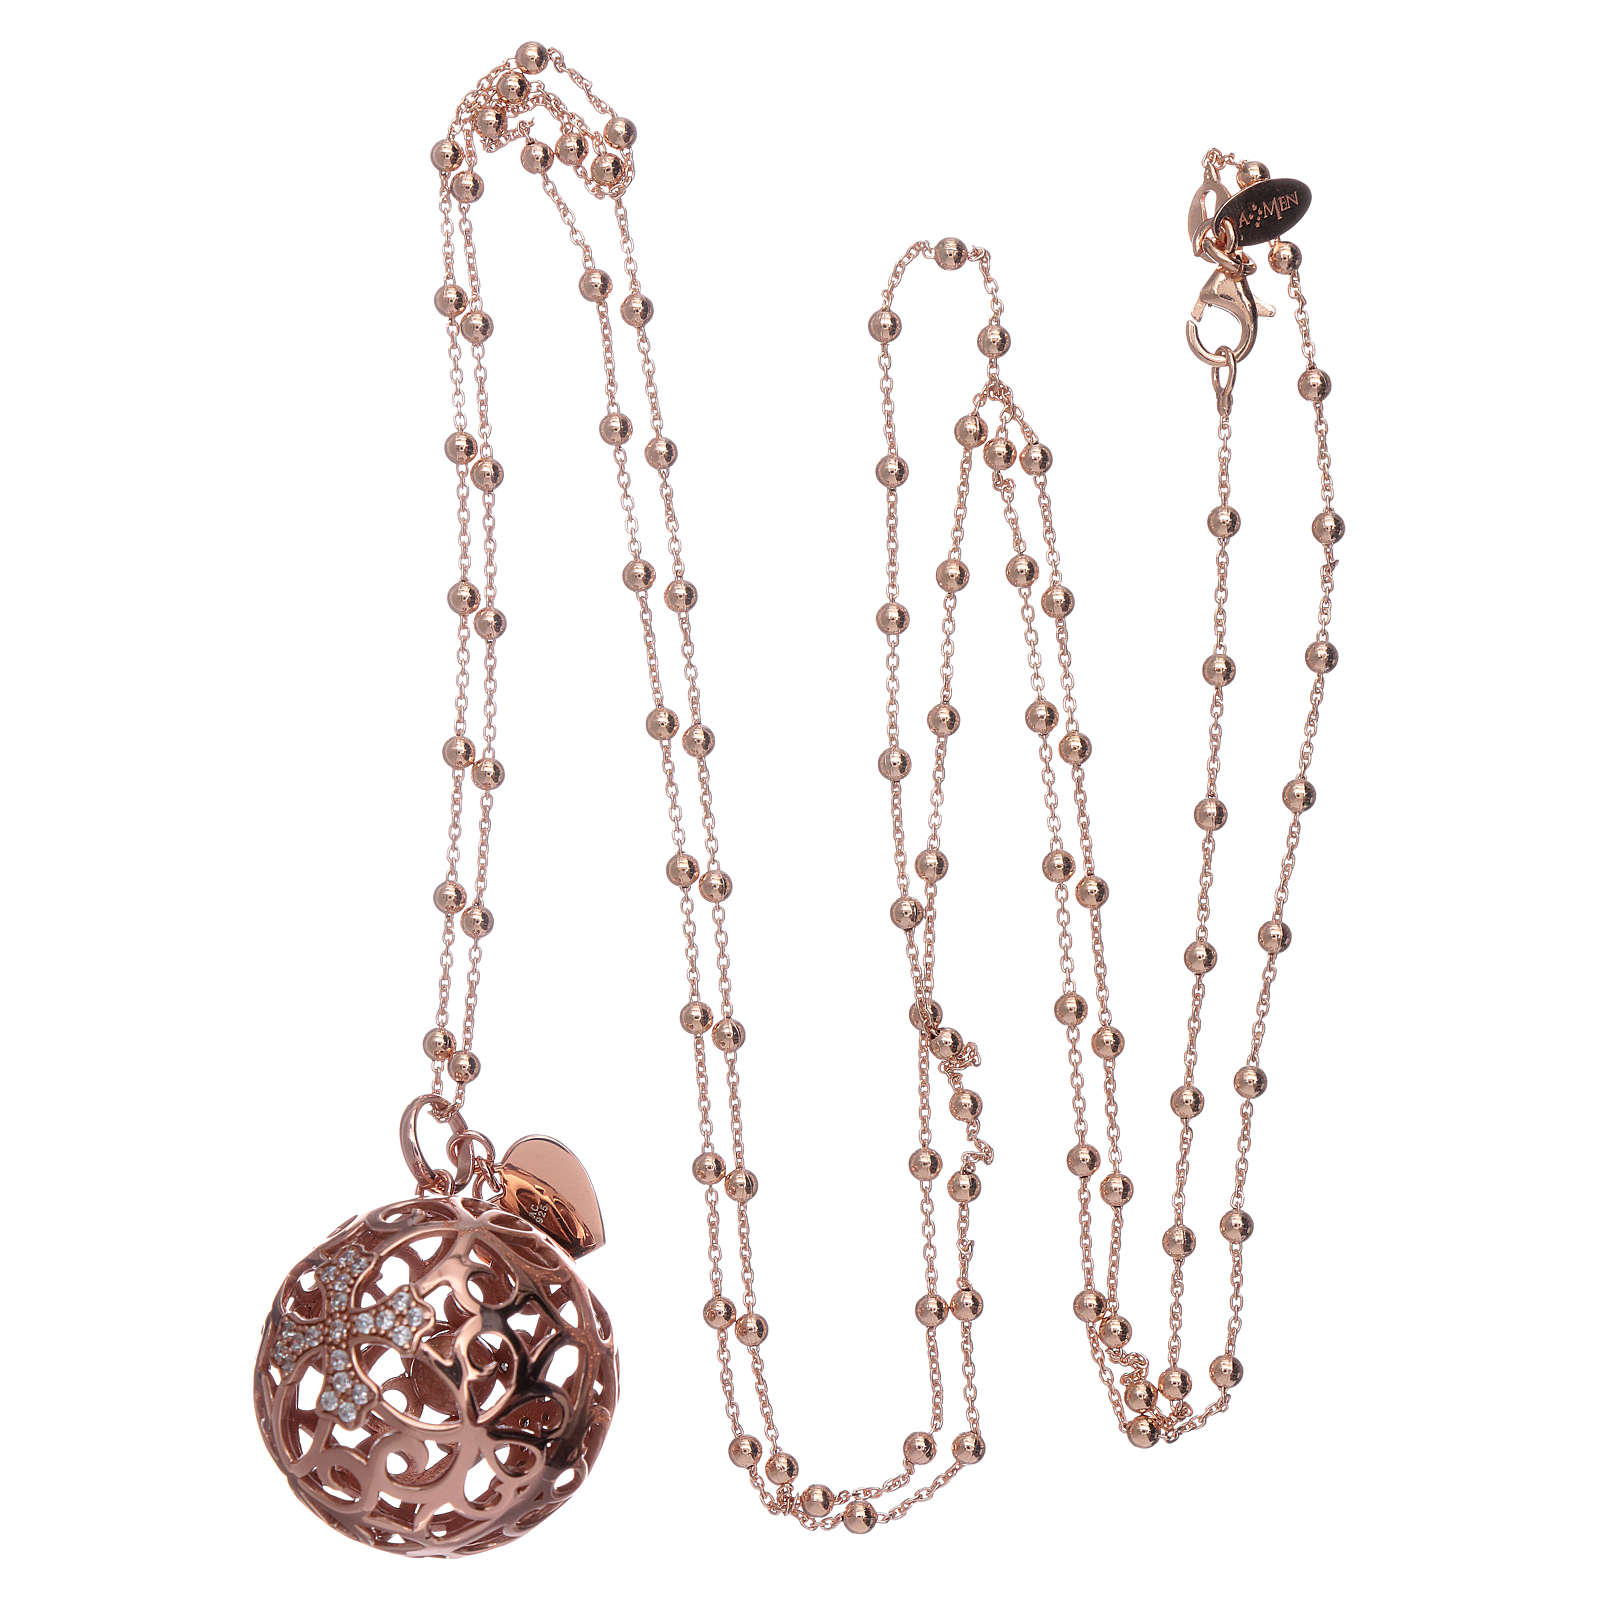 Amen angel caller necklace in 925 sterling silver finished in rosè and zircons   4